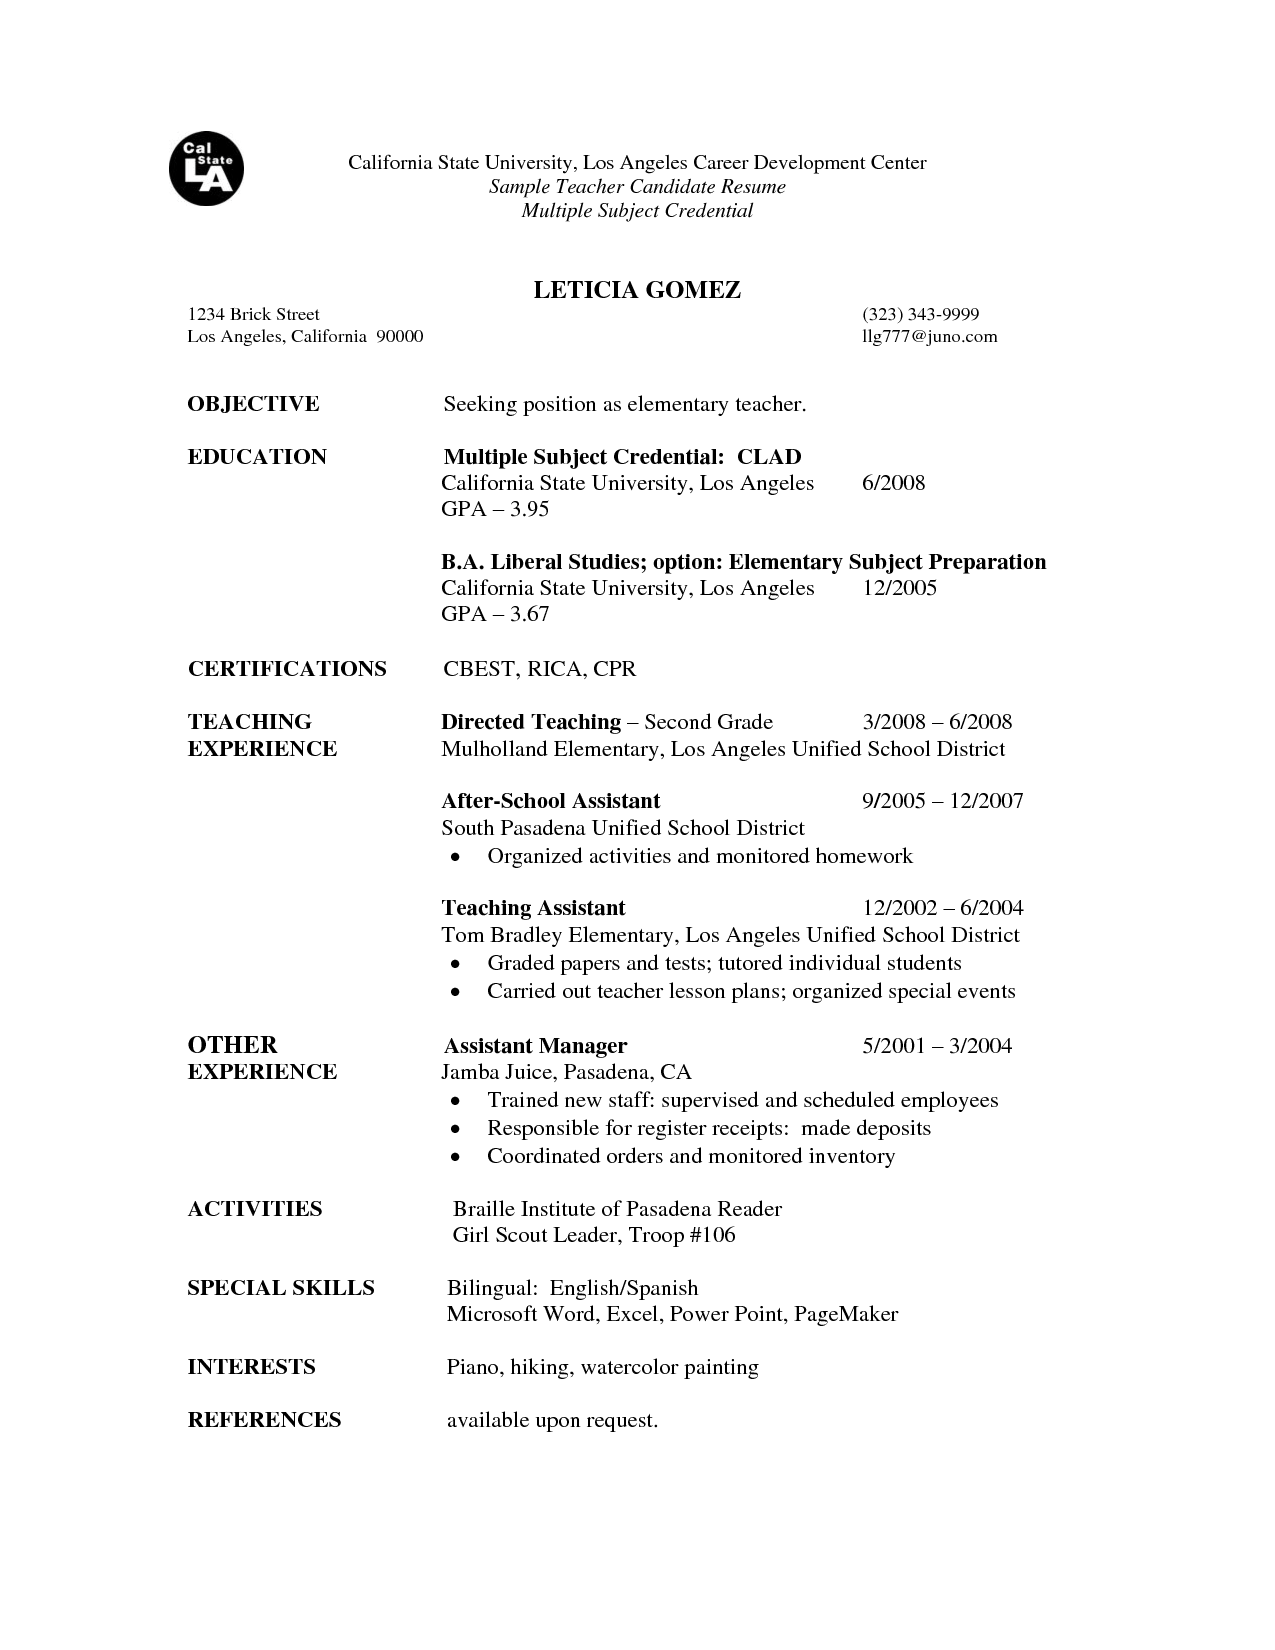 Resume Education Example Amazing Image Result For First Resume For Teacher  Resume  Pinterest Inspiration Design